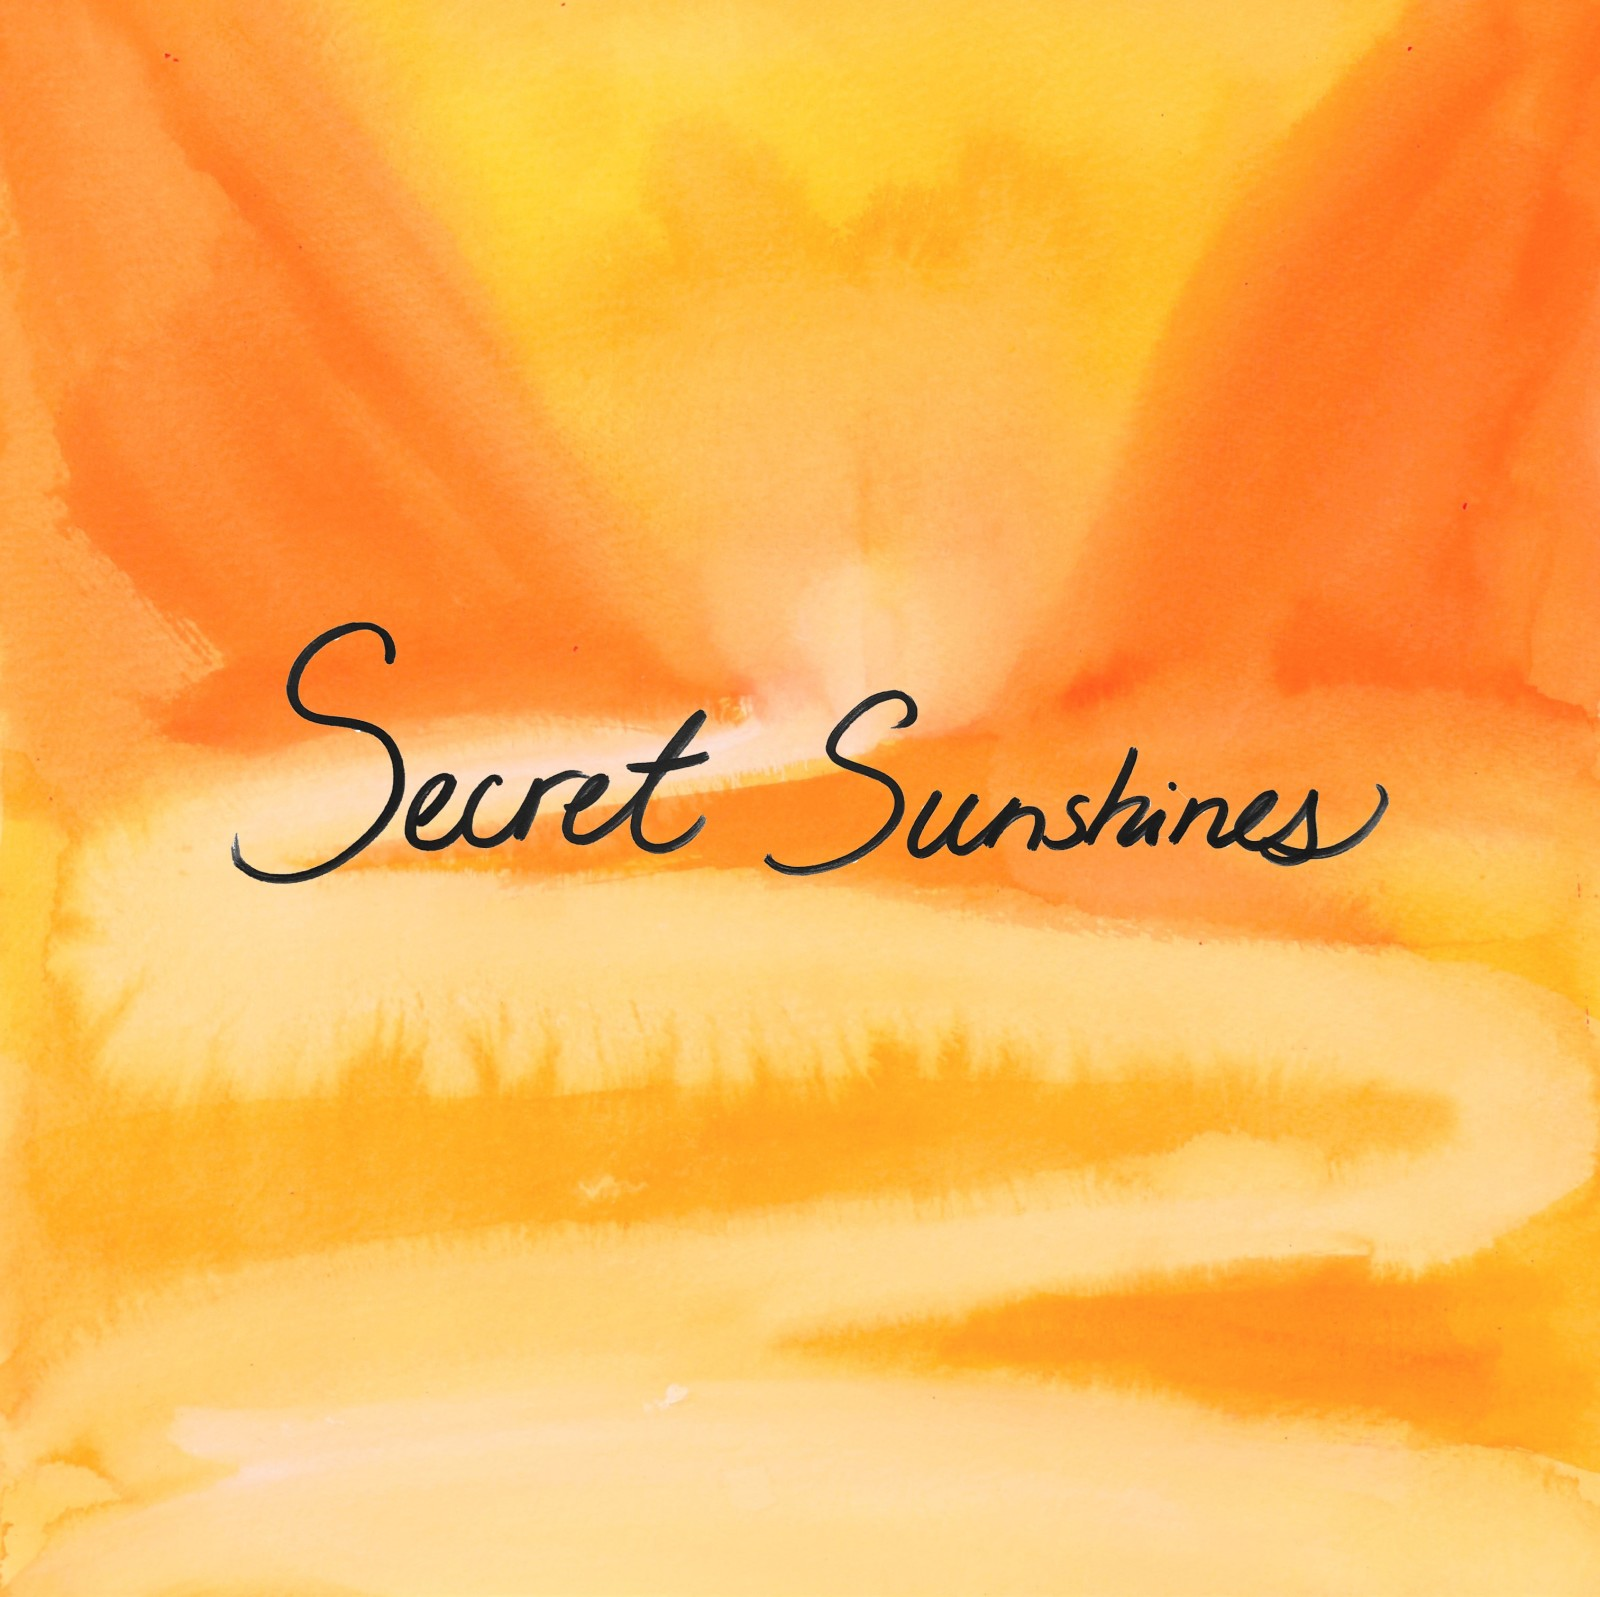 Secret Sunshines - Arusha Gallery